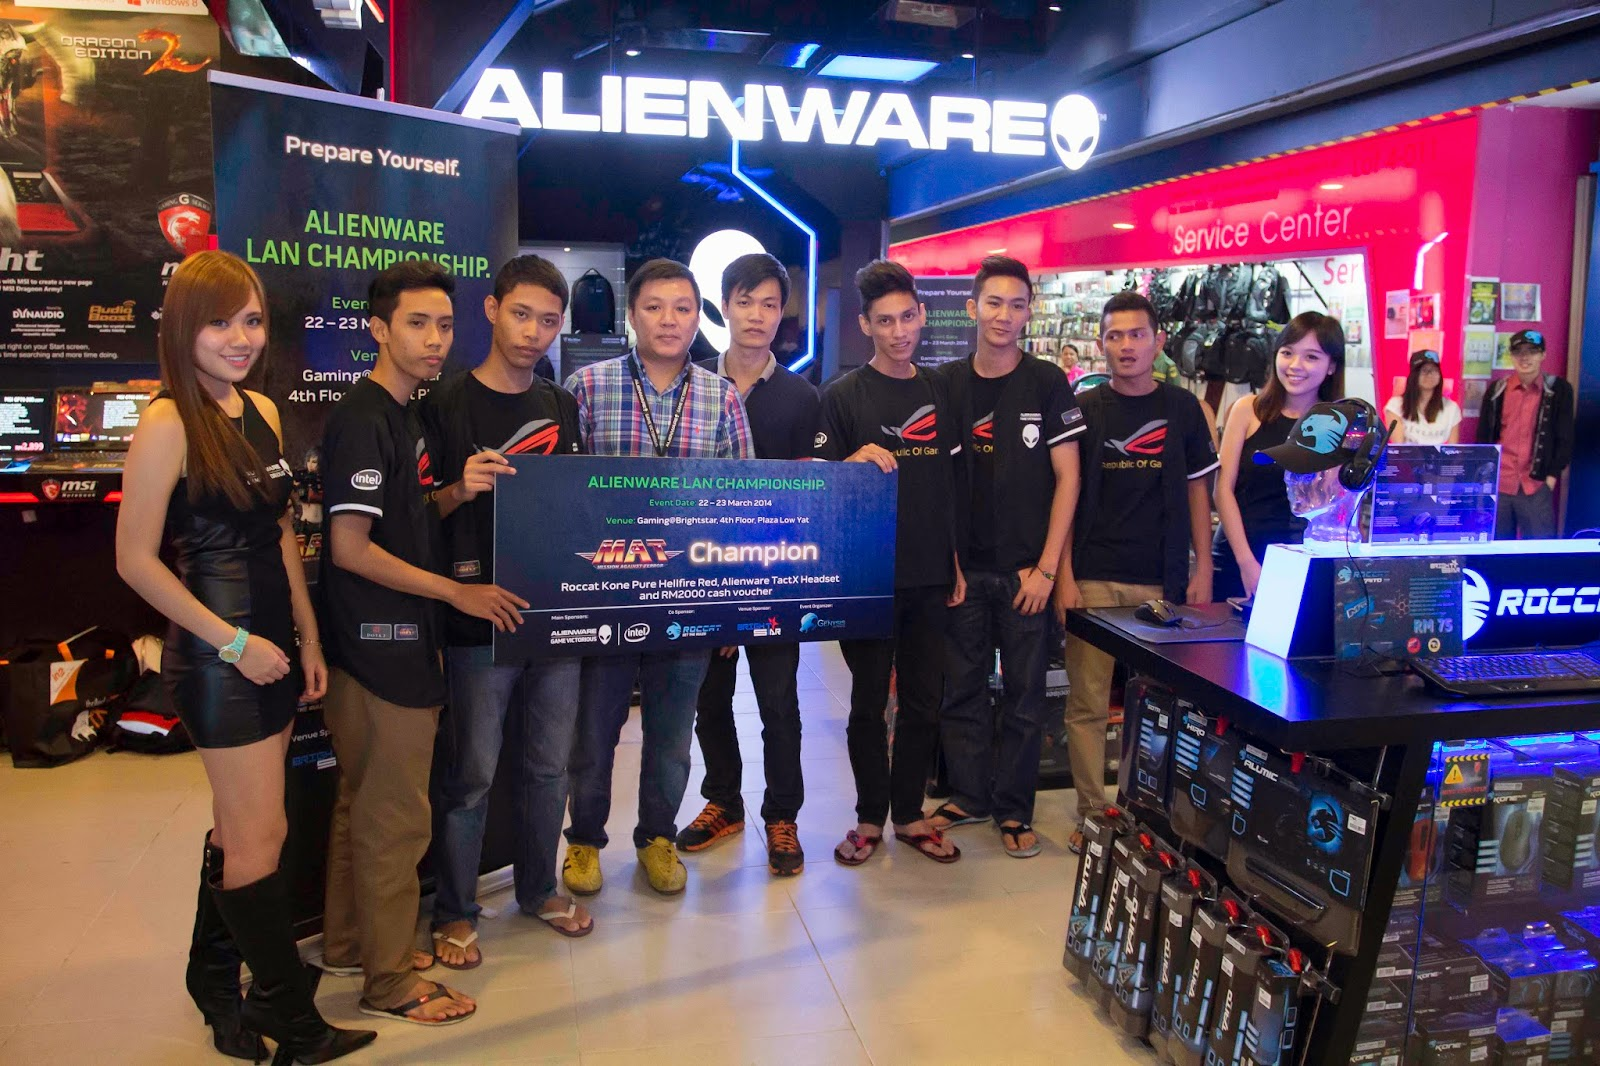 Malaysia's Leading Gamers Battle It Out at Alienware Tournament Alienware and Genysis Cyber E-sport Joined Forces for Alienware LAN Championship 14